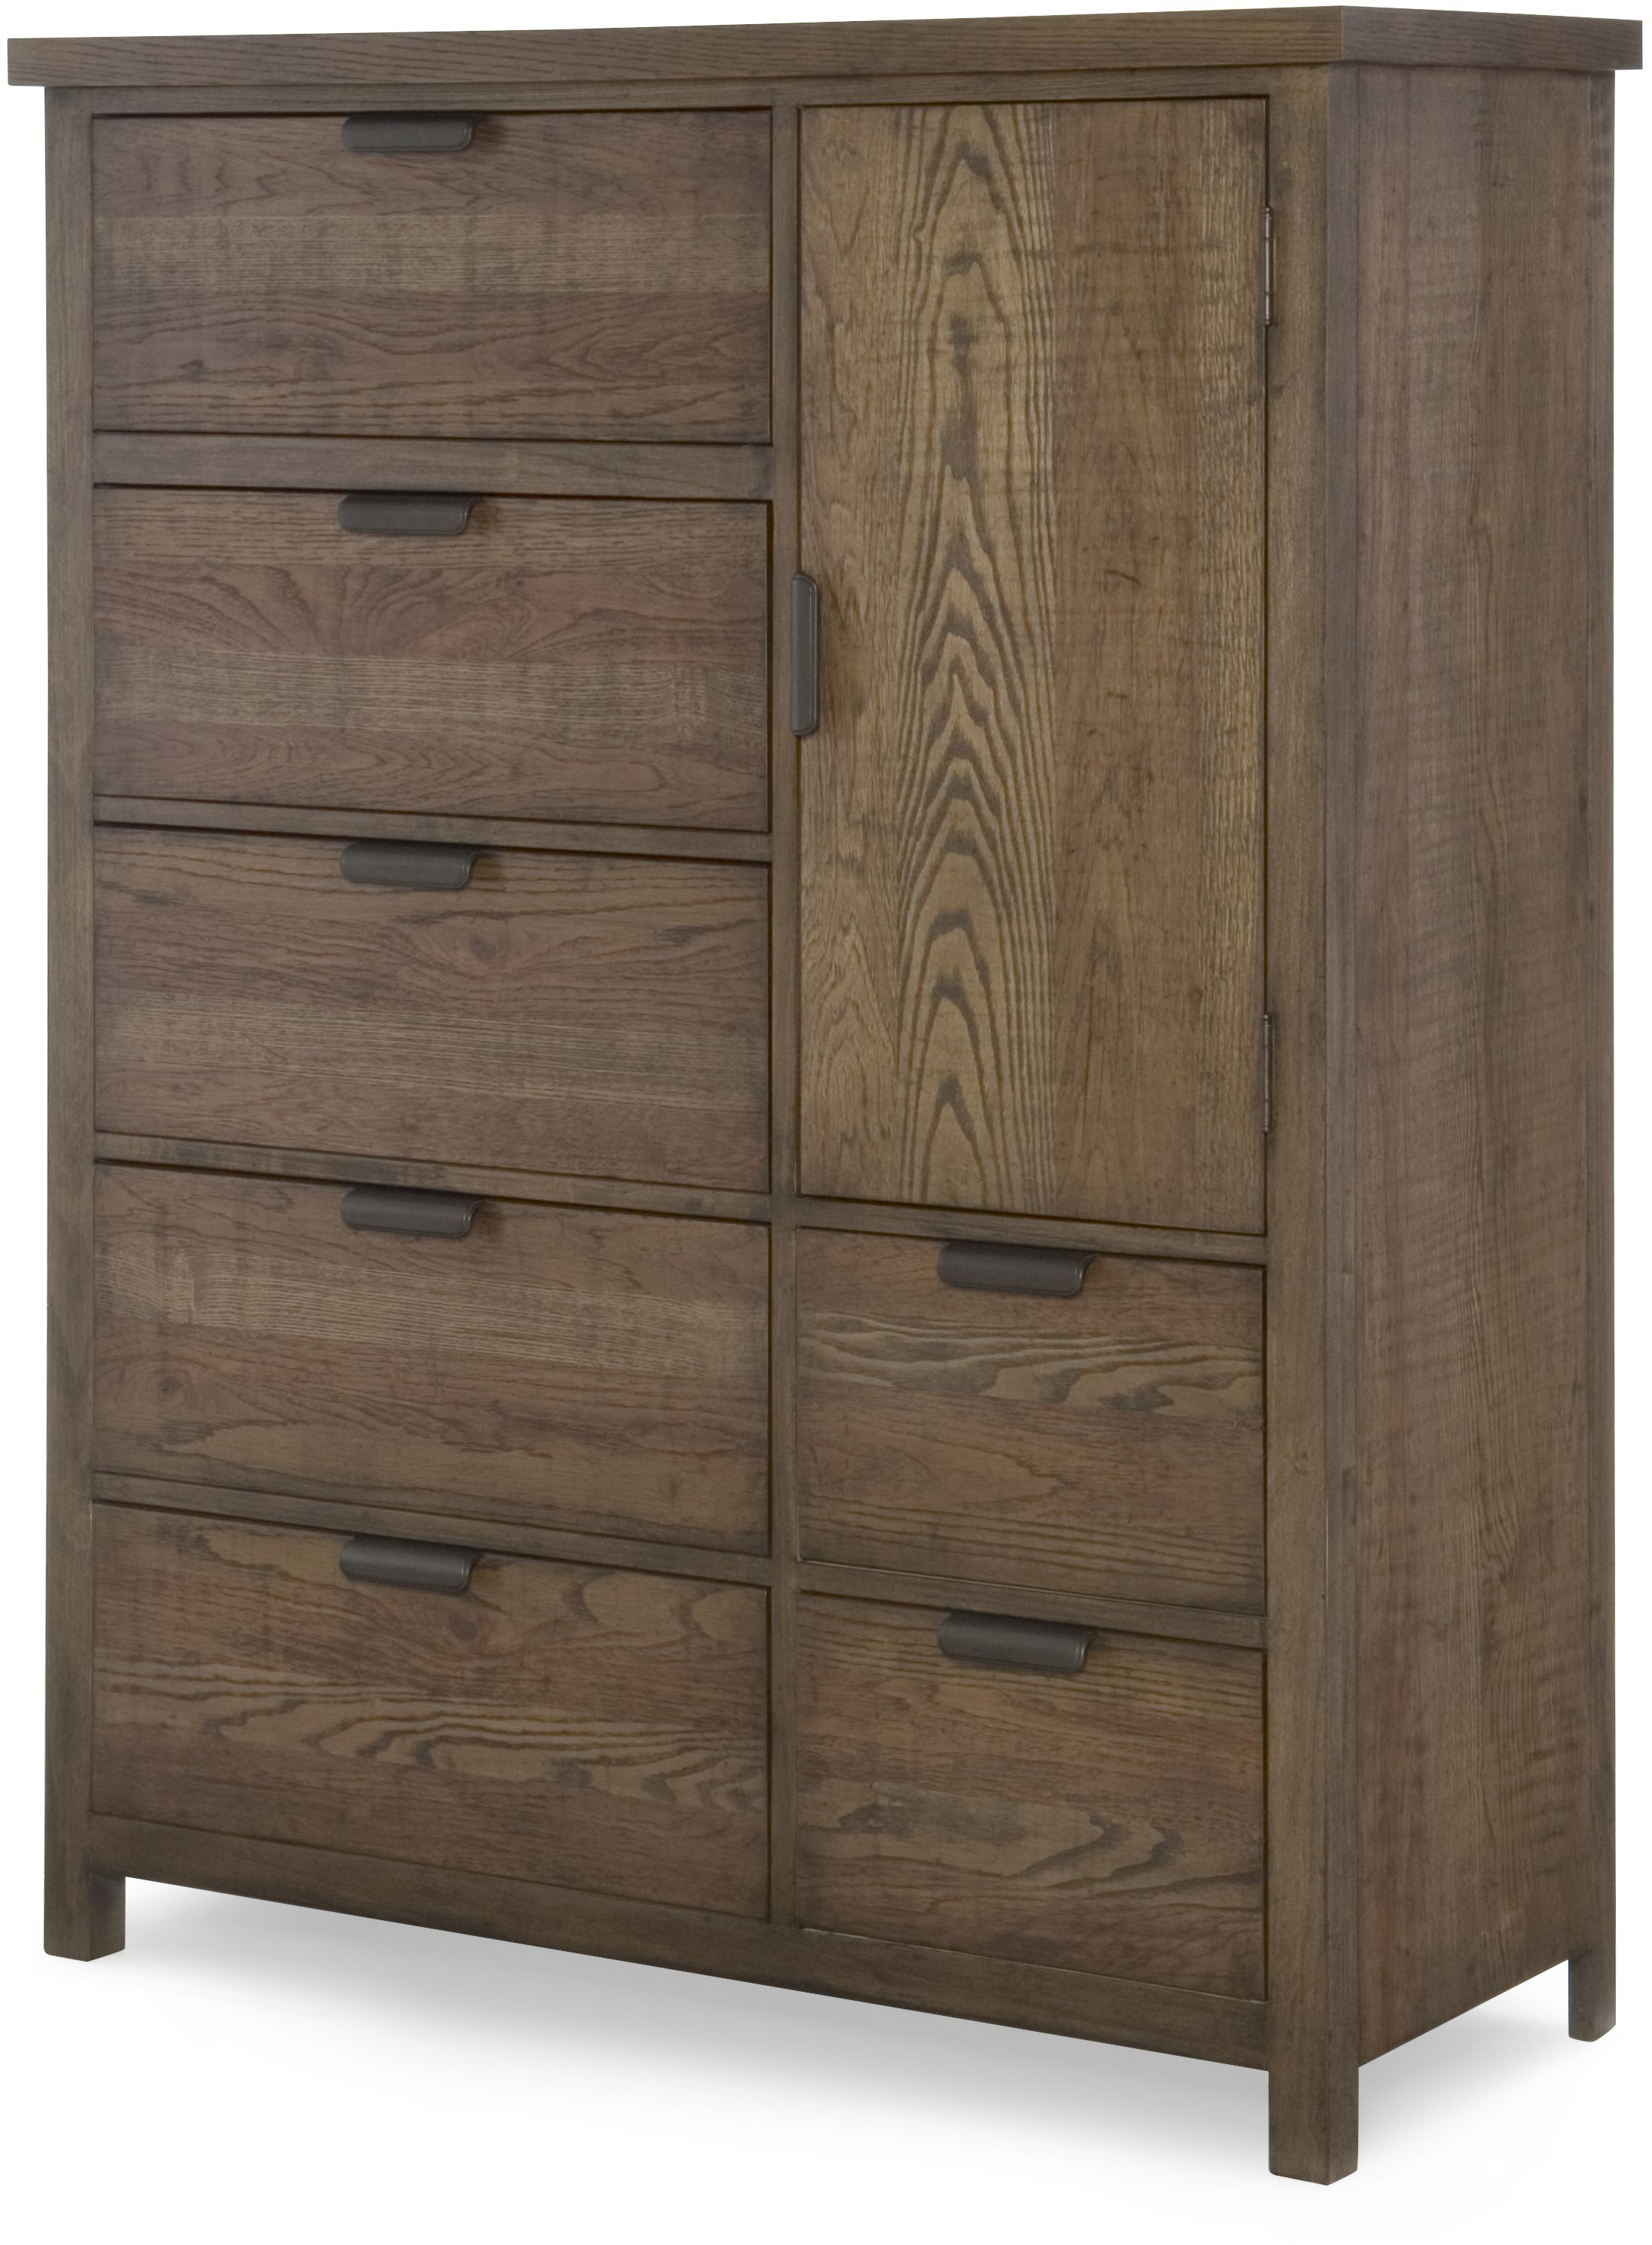 Legacy Classic Kids Fulton County Door Chest  - Item Number: 5900-2500